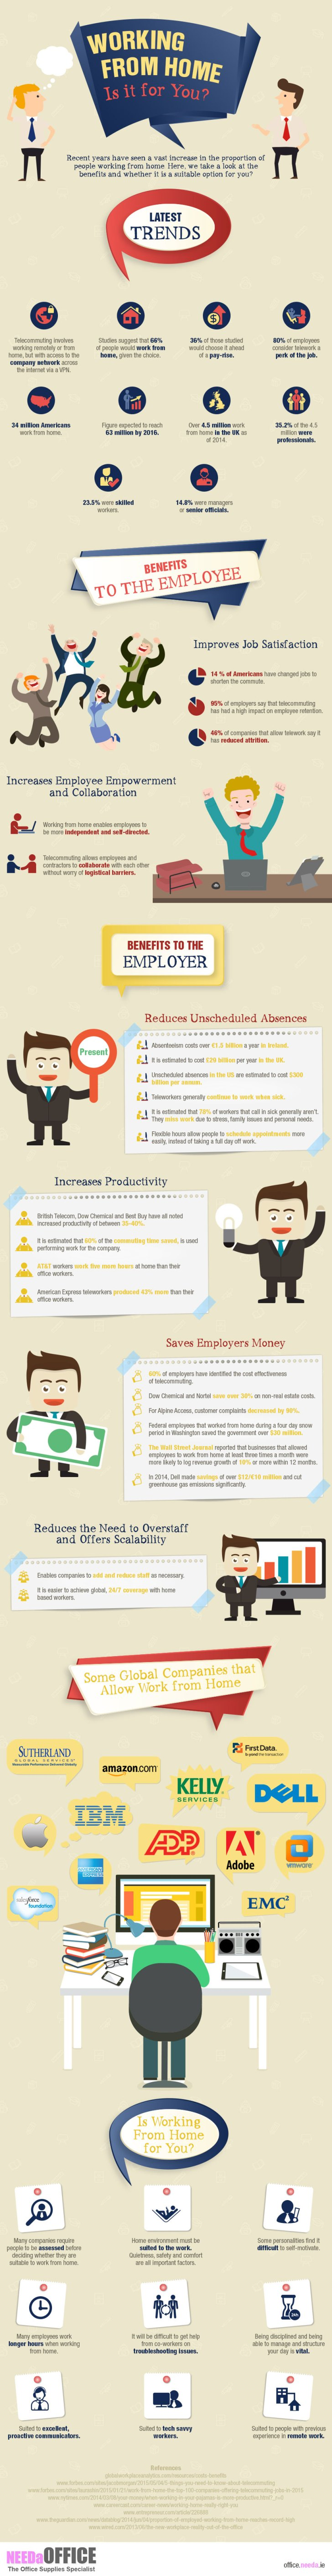 Working-From-Home-Infographic900